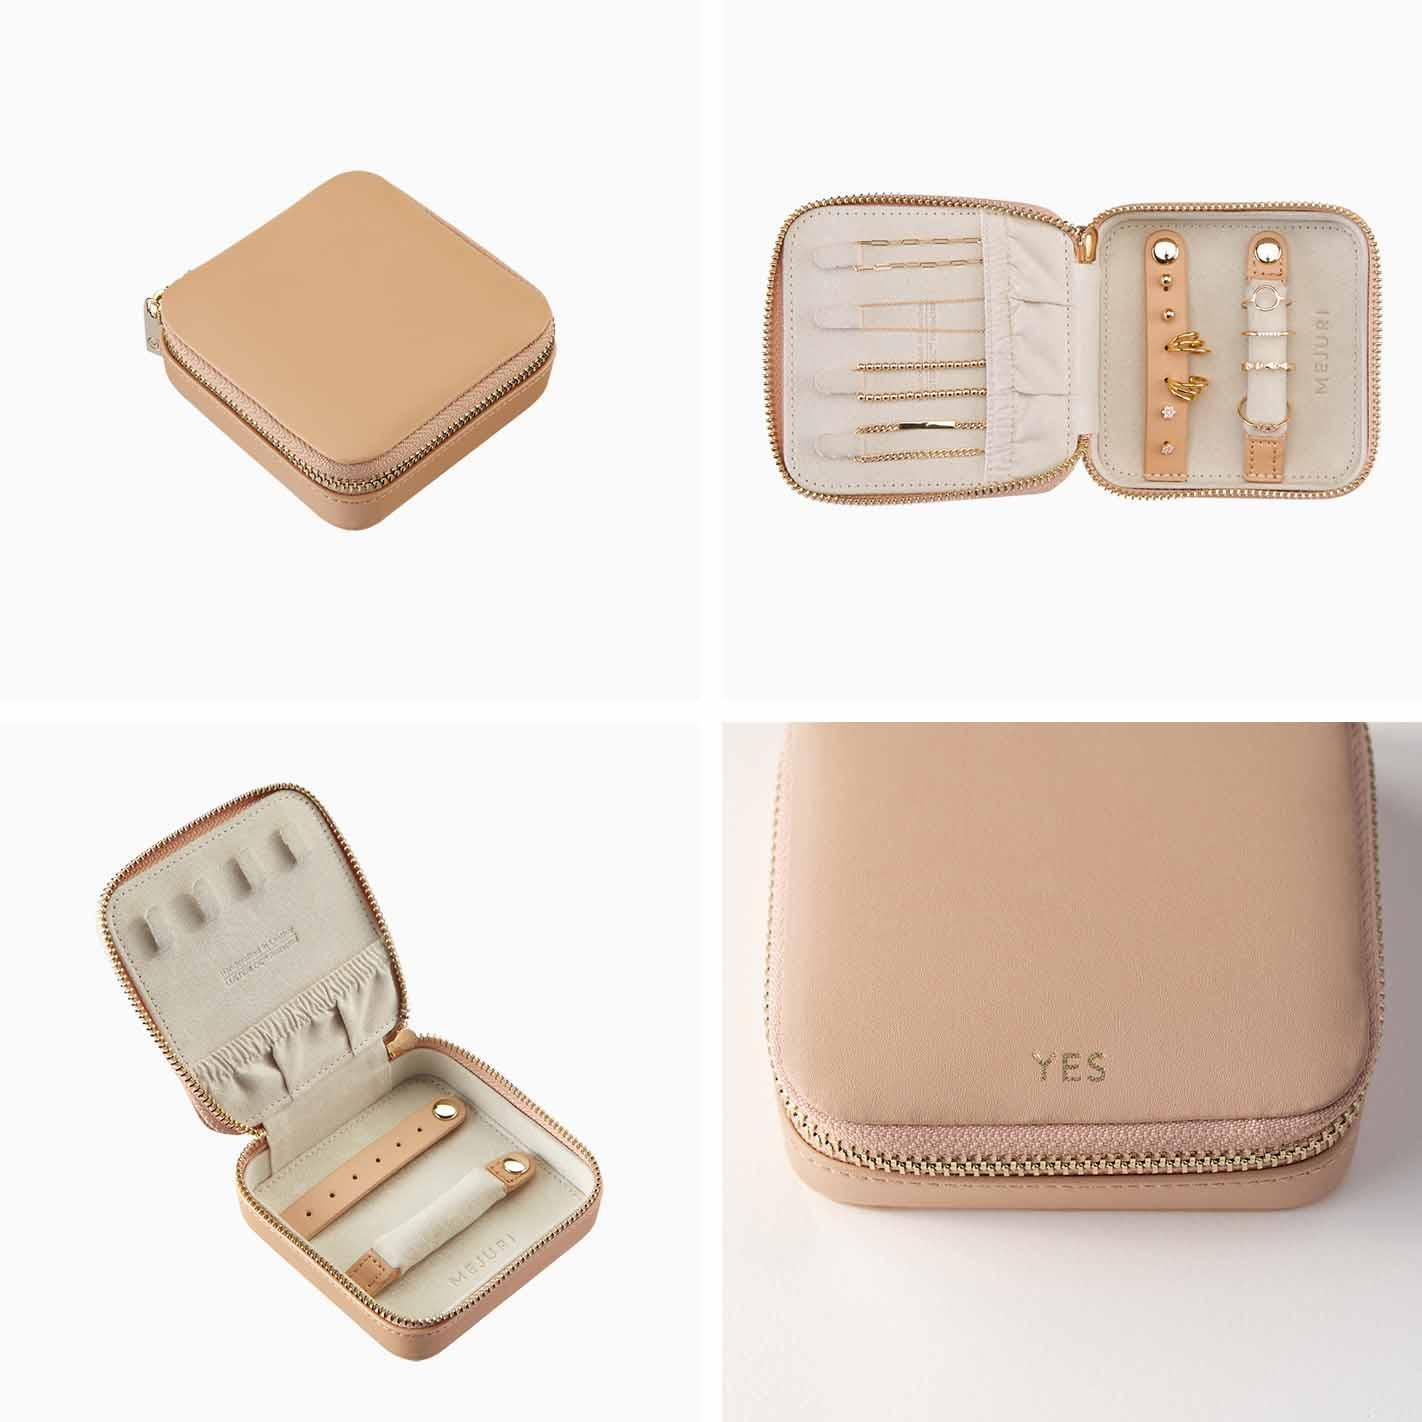 Jewelry travel case from Mejuri.